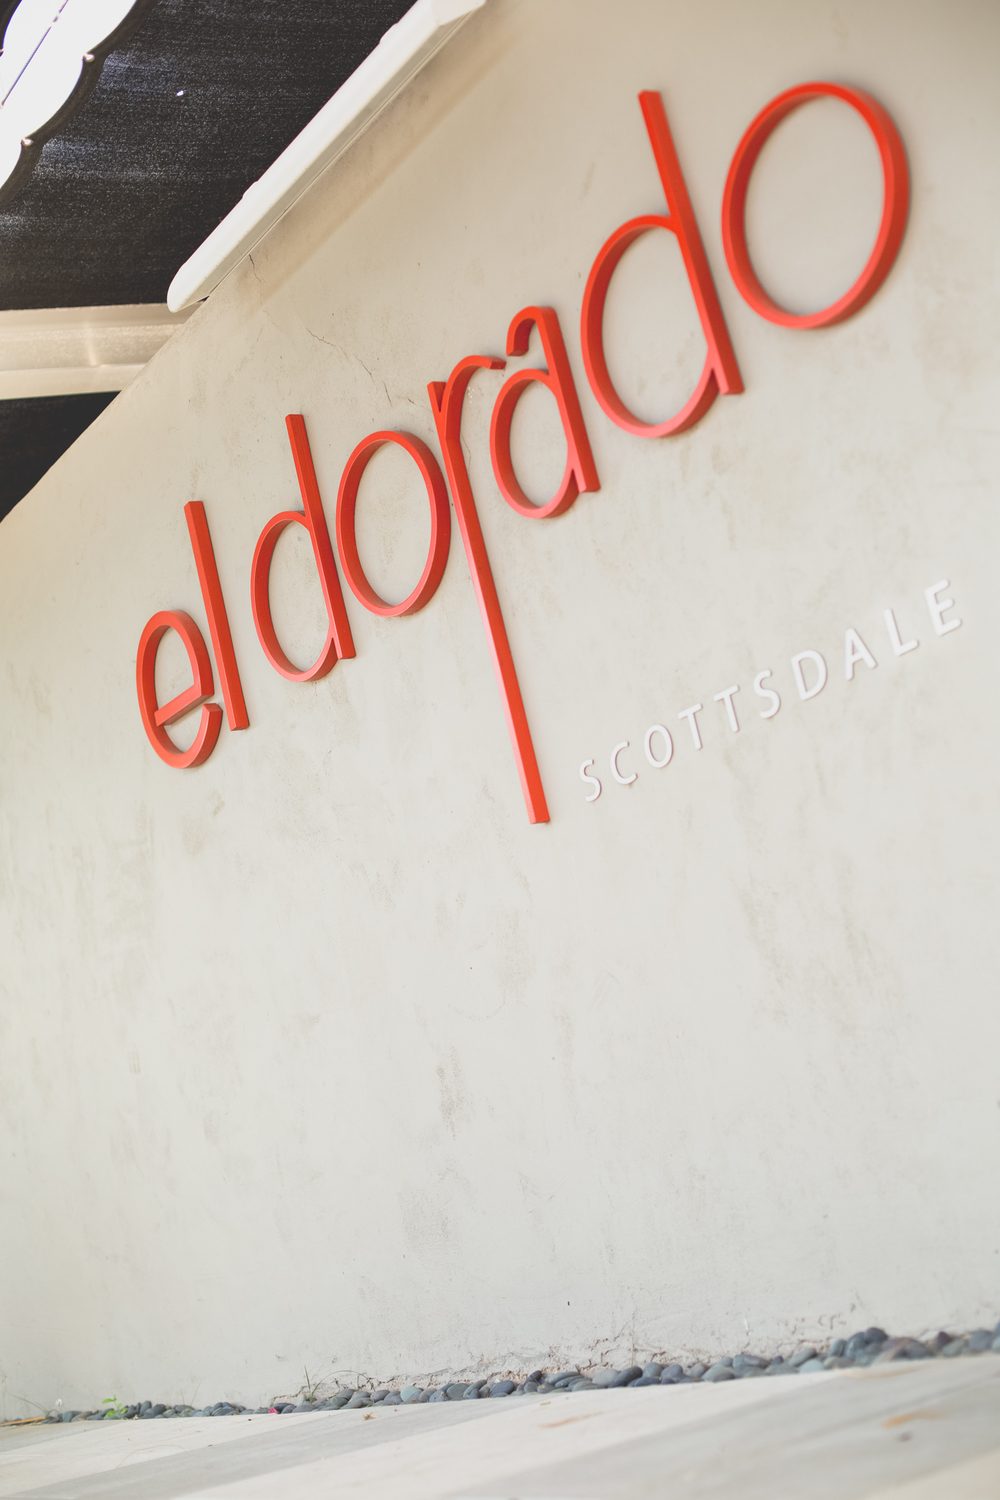 scottsdale-weddings-venue-el-dorado-sign